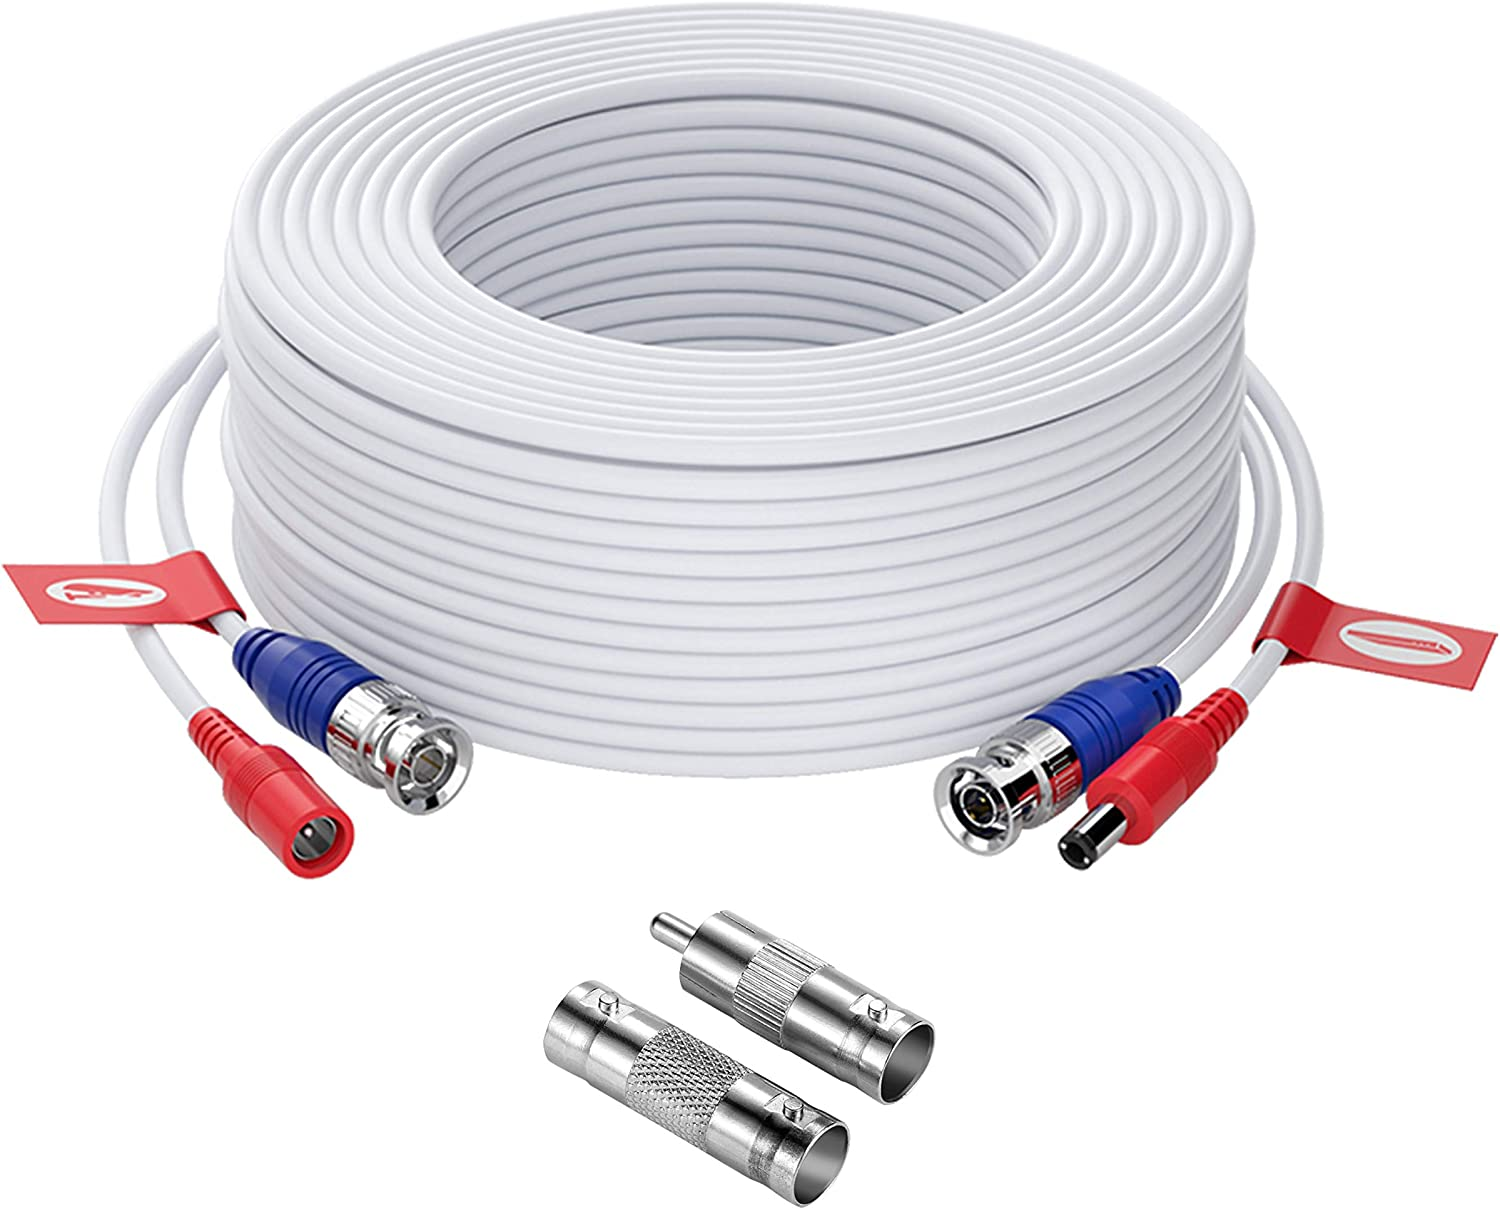 ZOSI Security Camera Cable,100ft 30M BNC Video Power Cable,Surveillance Camera Wire Cord Extension Cable for 4K 8MP 5MP 1080P Video CCTV DVR Camera System,White(Included BNC Connectors)